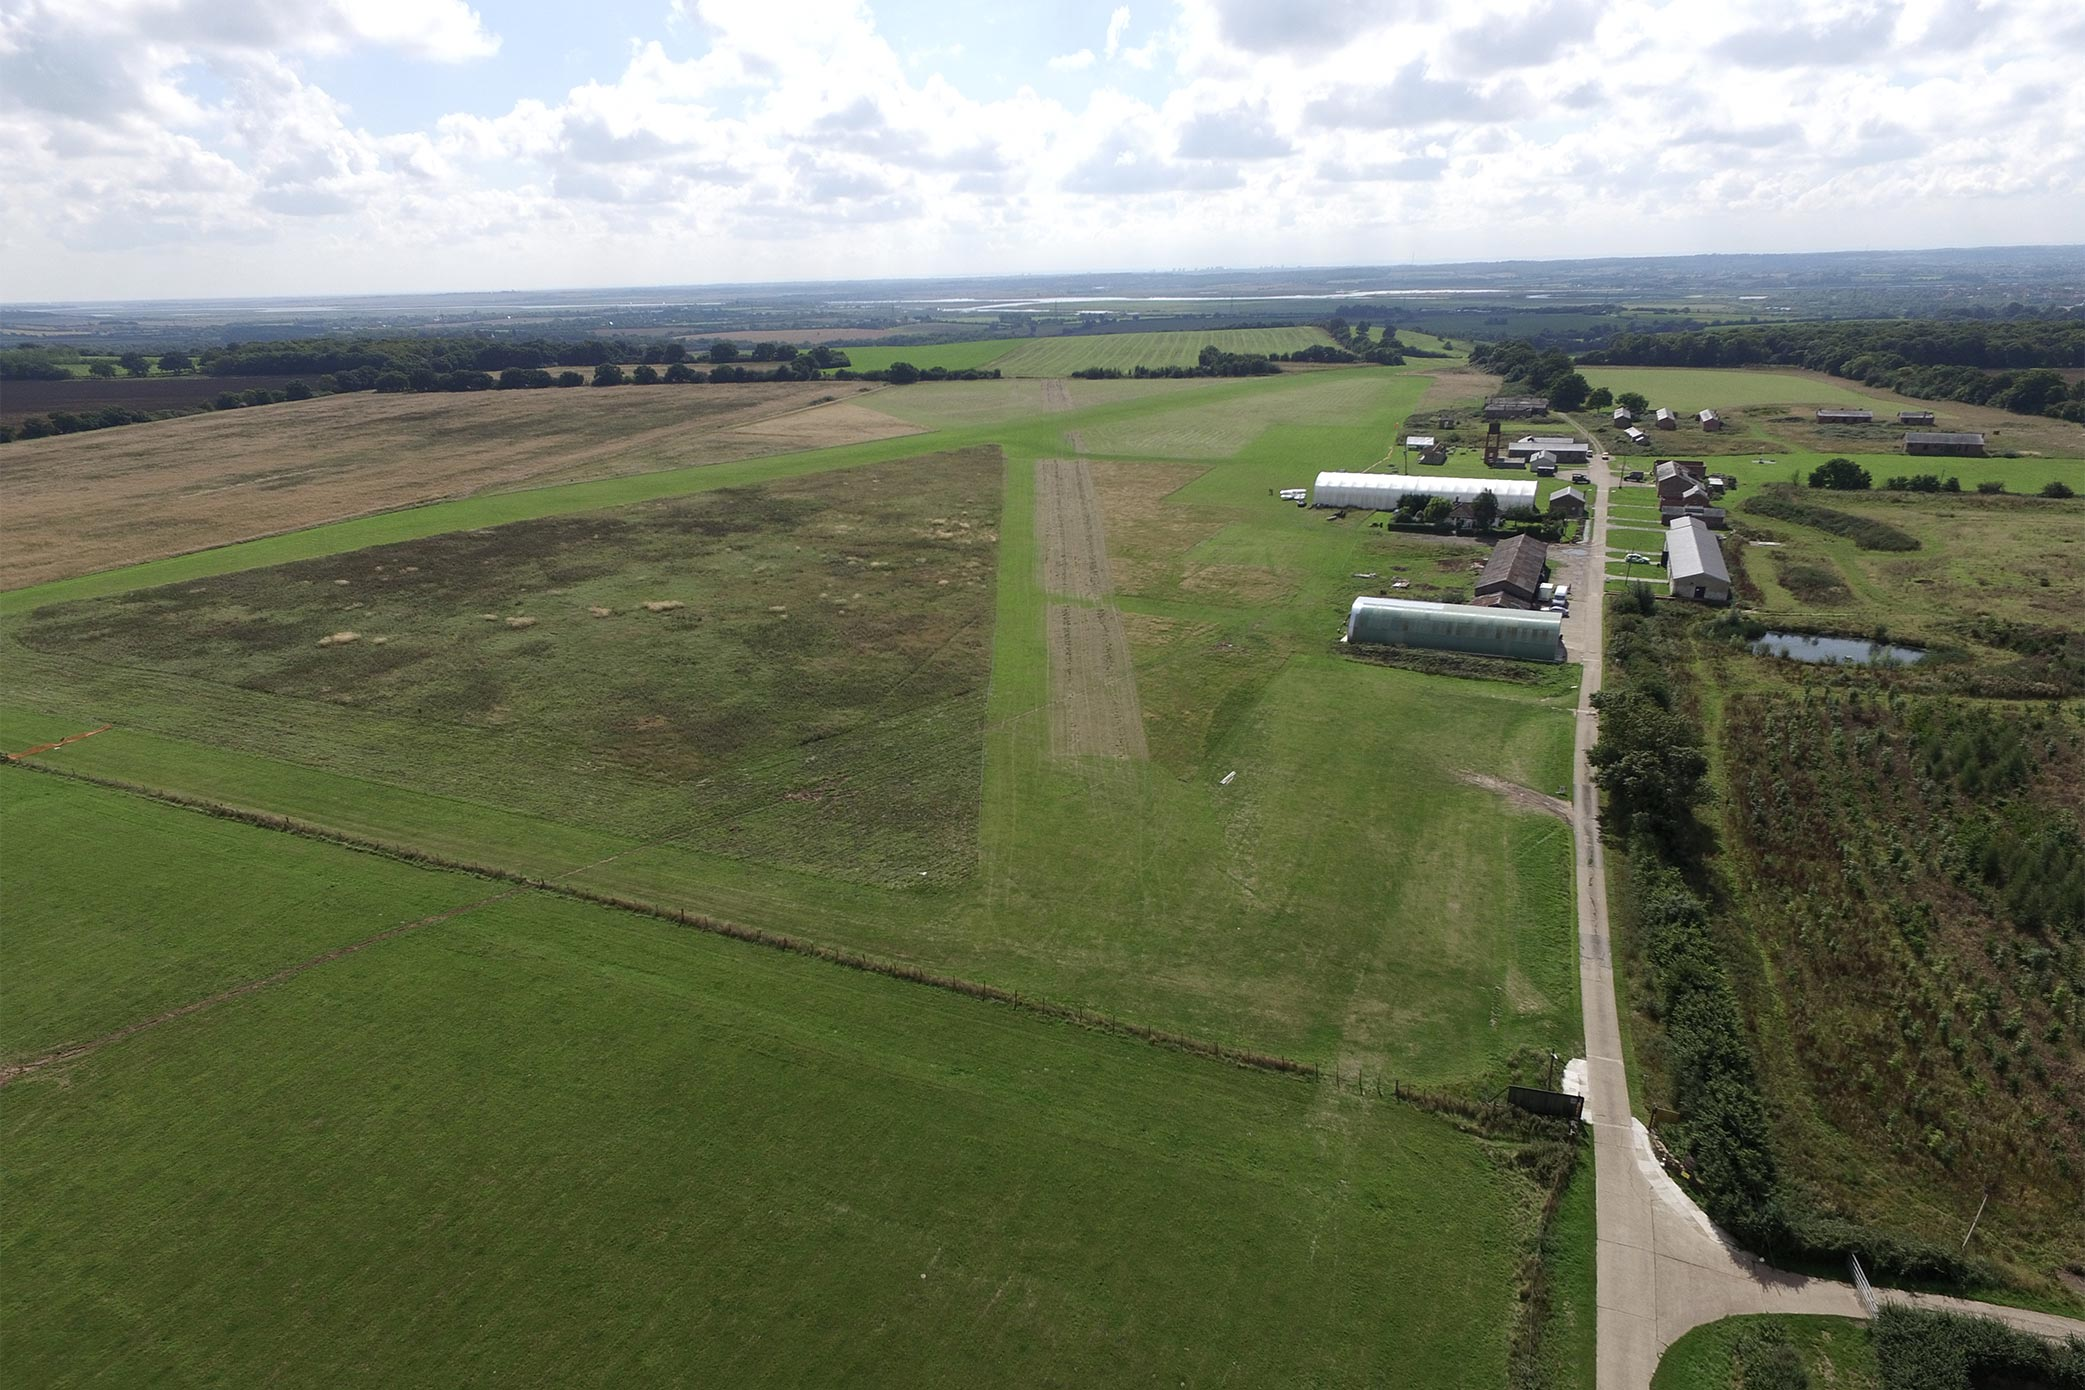 Stow Maries Great War Aerodrome from the sky